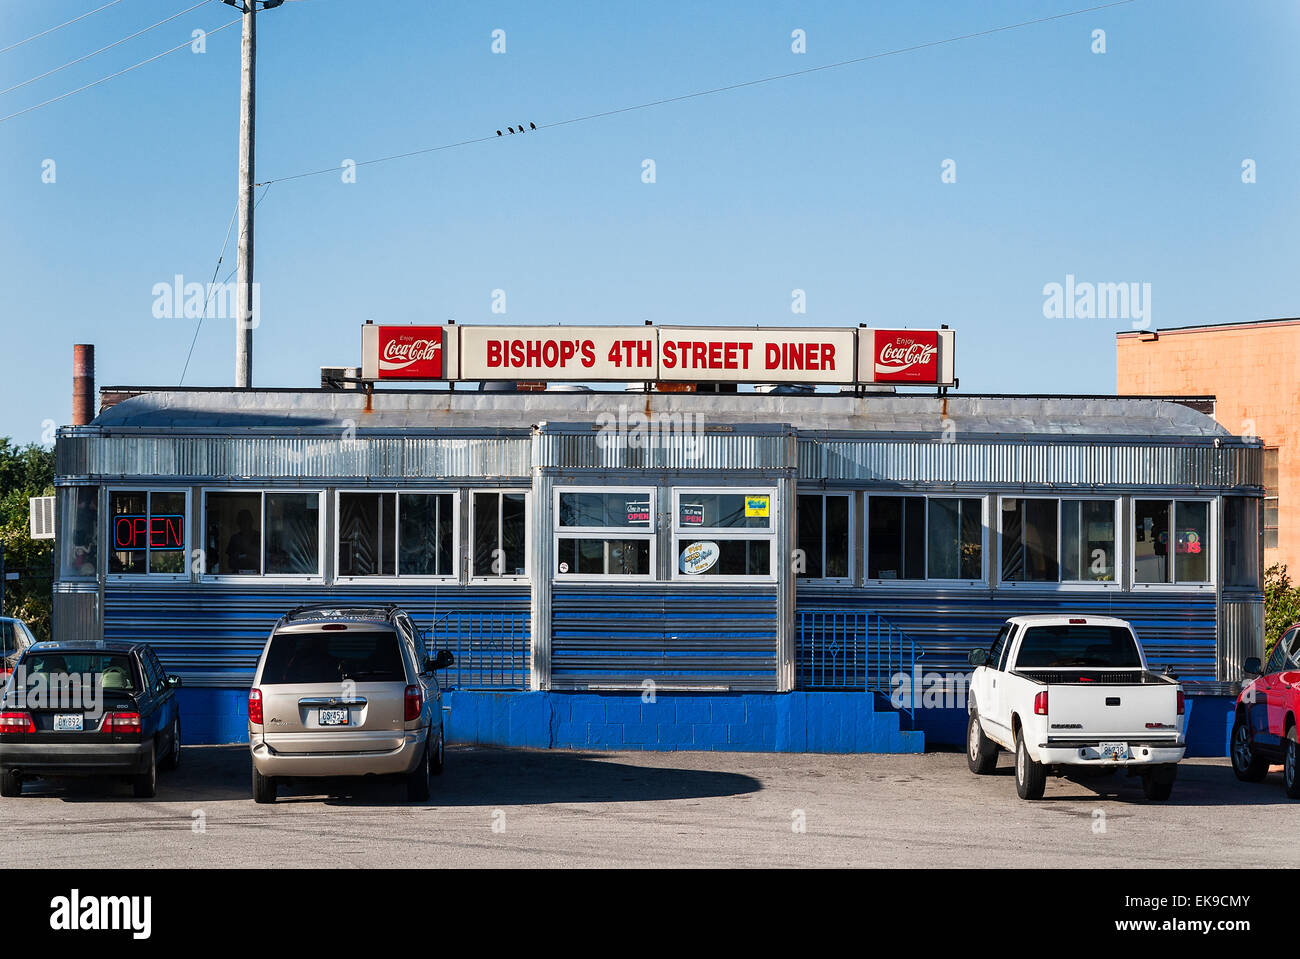 American Diner Exterior High Resolution Stock Photography And Images Alamy